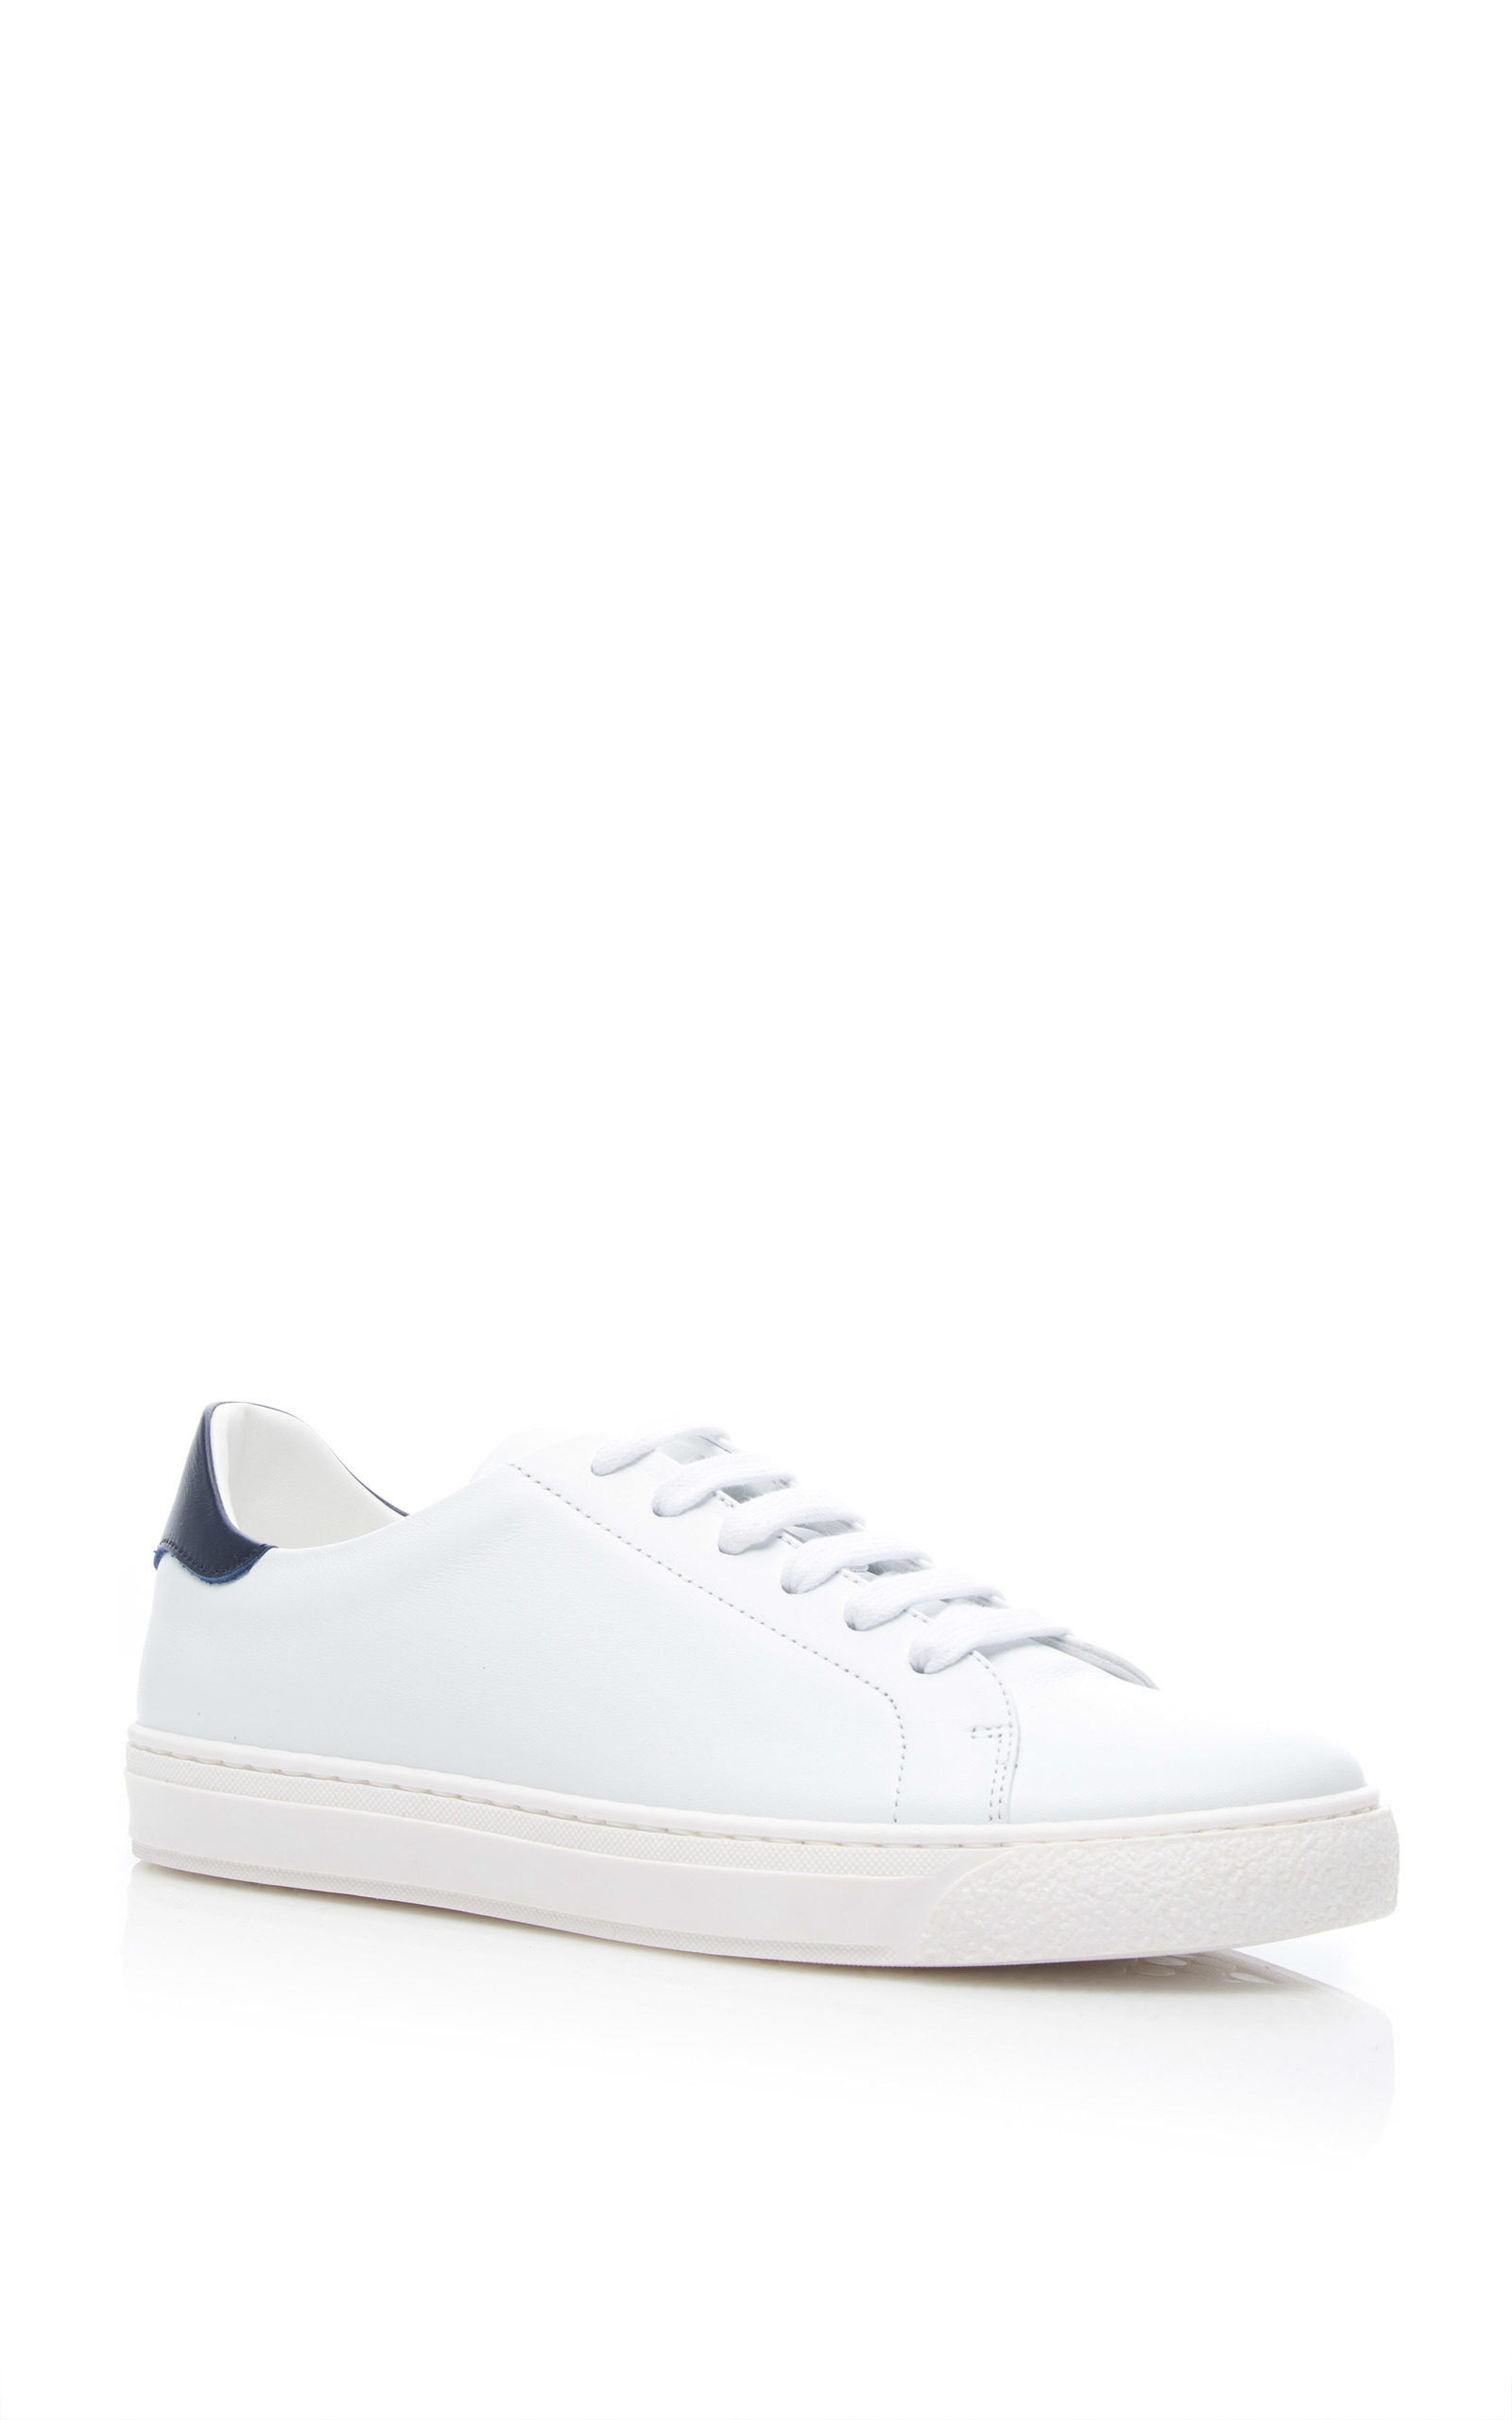 c1ff221ee477b0 Anya Hindmarch  Eyes  Embossed Leather Sneakers In White